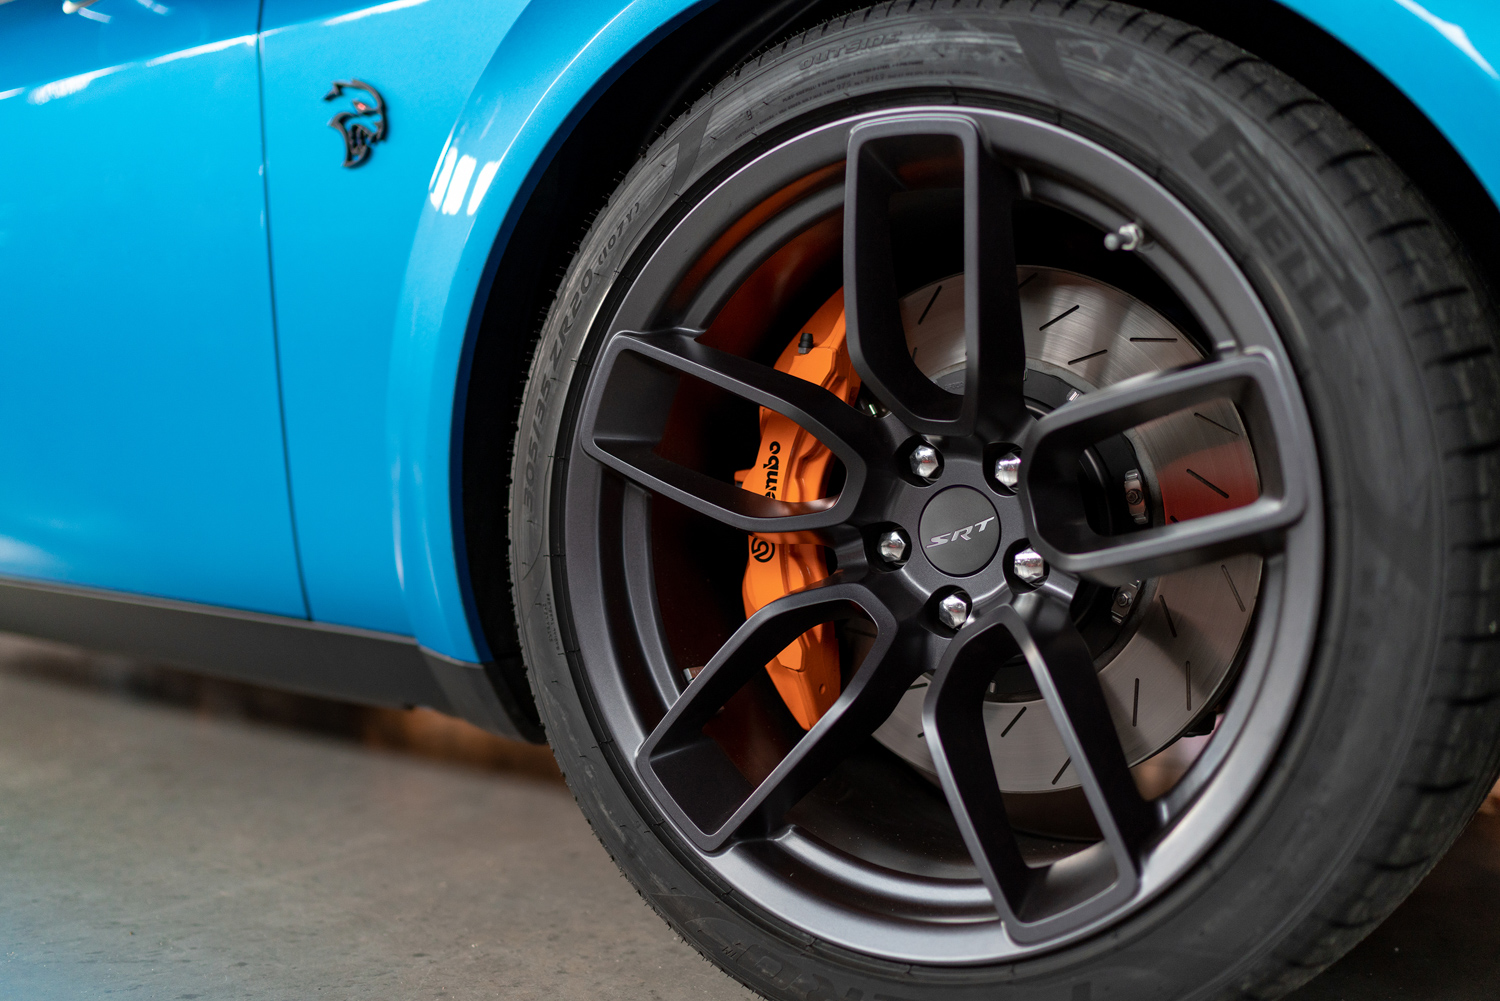 2019 Challenger SRT Hellcat Redeye Widebody wheels